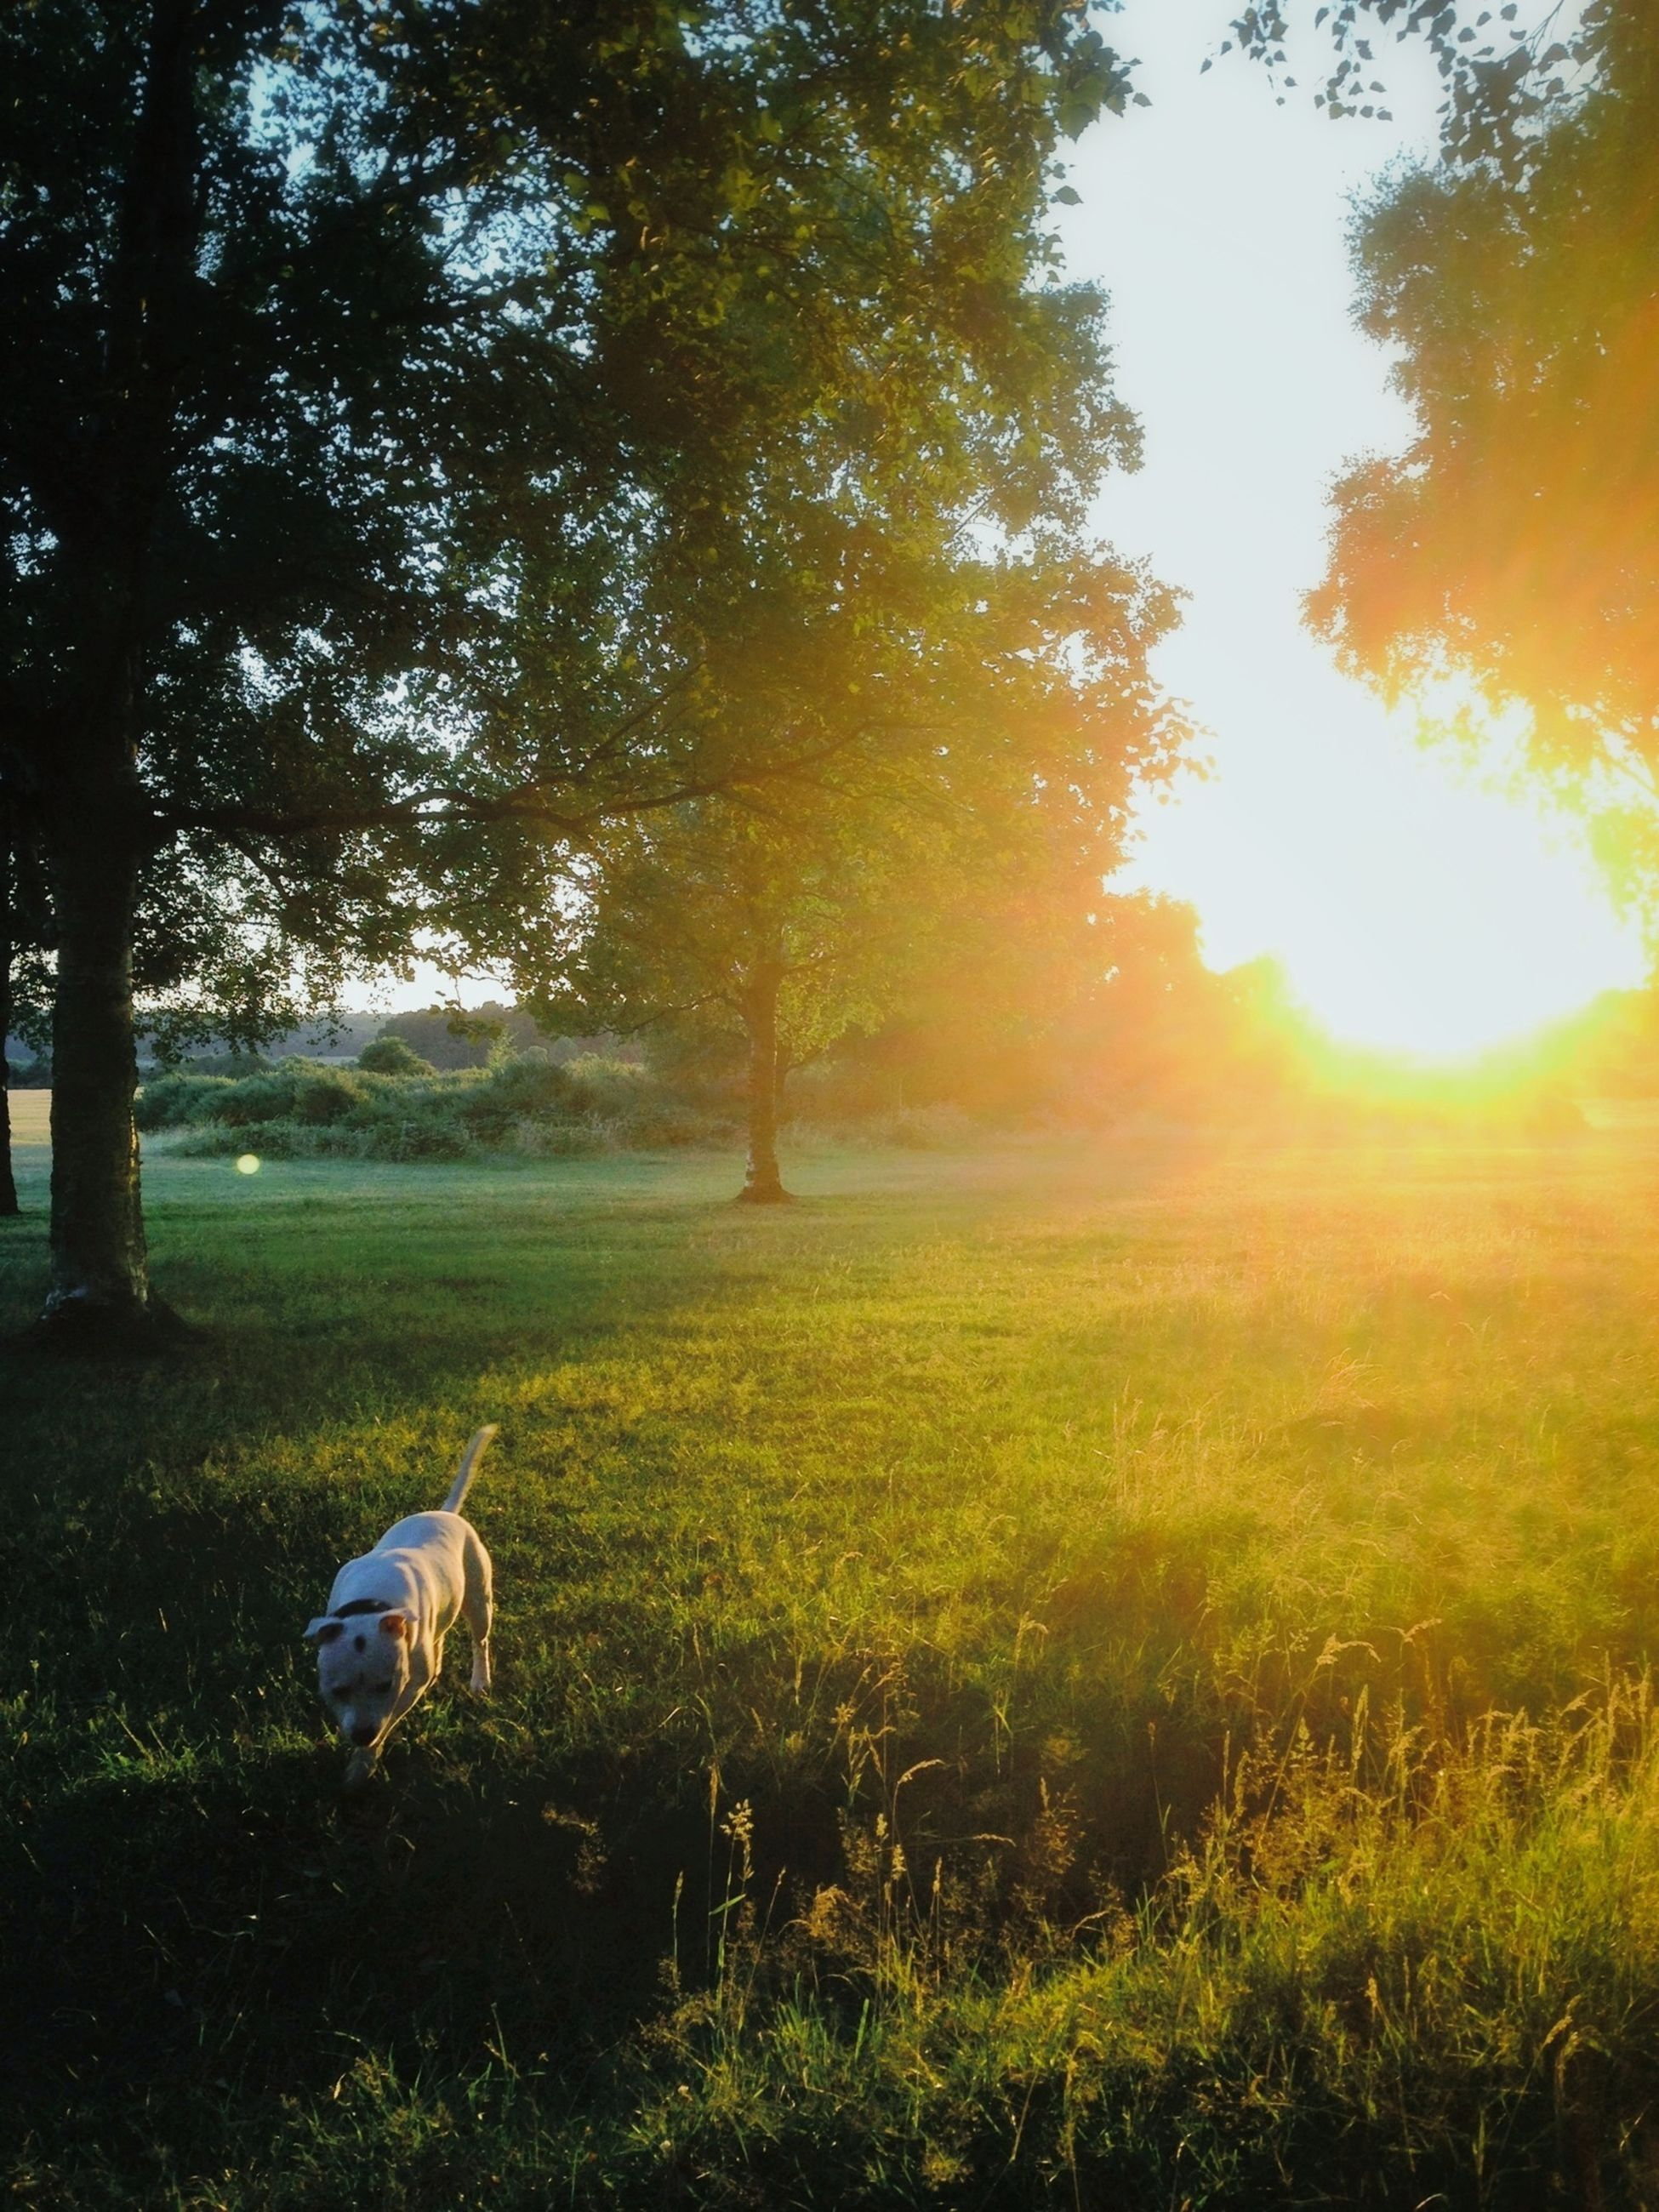 grass, animal themes, sun, tree, field, grassy, sunlight, one animal, sunbeam, sunset, nature, landscape, lens flare, tranquility, beauty in nature, growth, bird, tranquil scene, green color, domestic animals